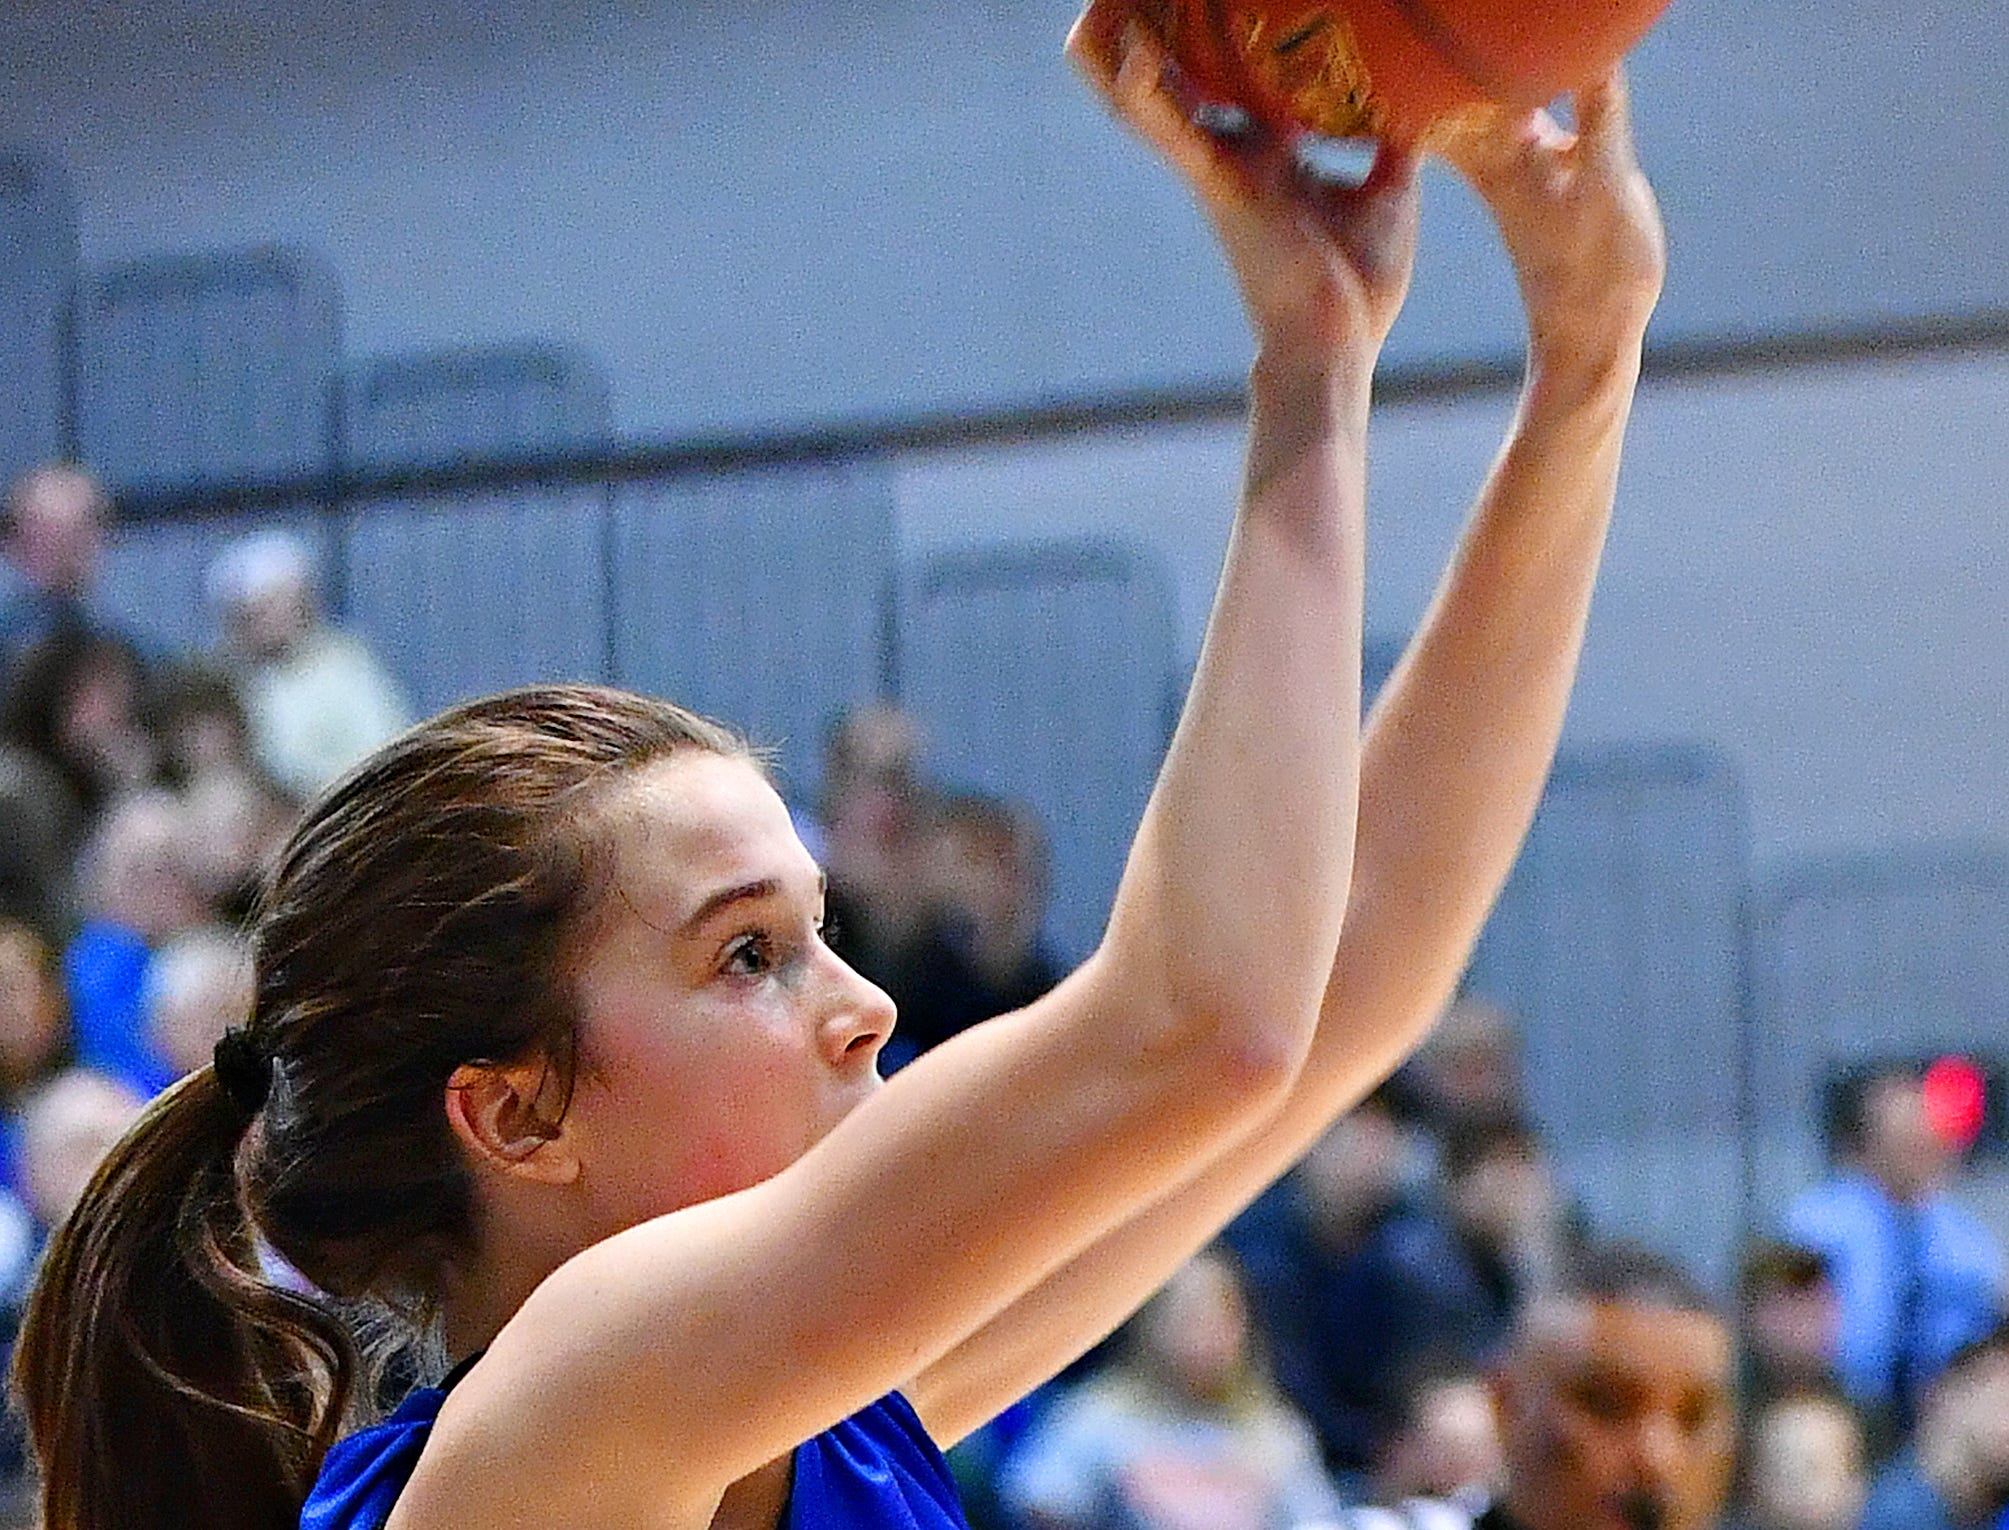 Spring Grove's Ella Kale lines up her shot during York-Adams League girls' basketball quarterfinal action at against Kennard-Dale at Dallastown Area High School in York Township, Friday, Feb. 8, 2019. Spring Grove would win the game 47-38. Dawn J. Sagert photo